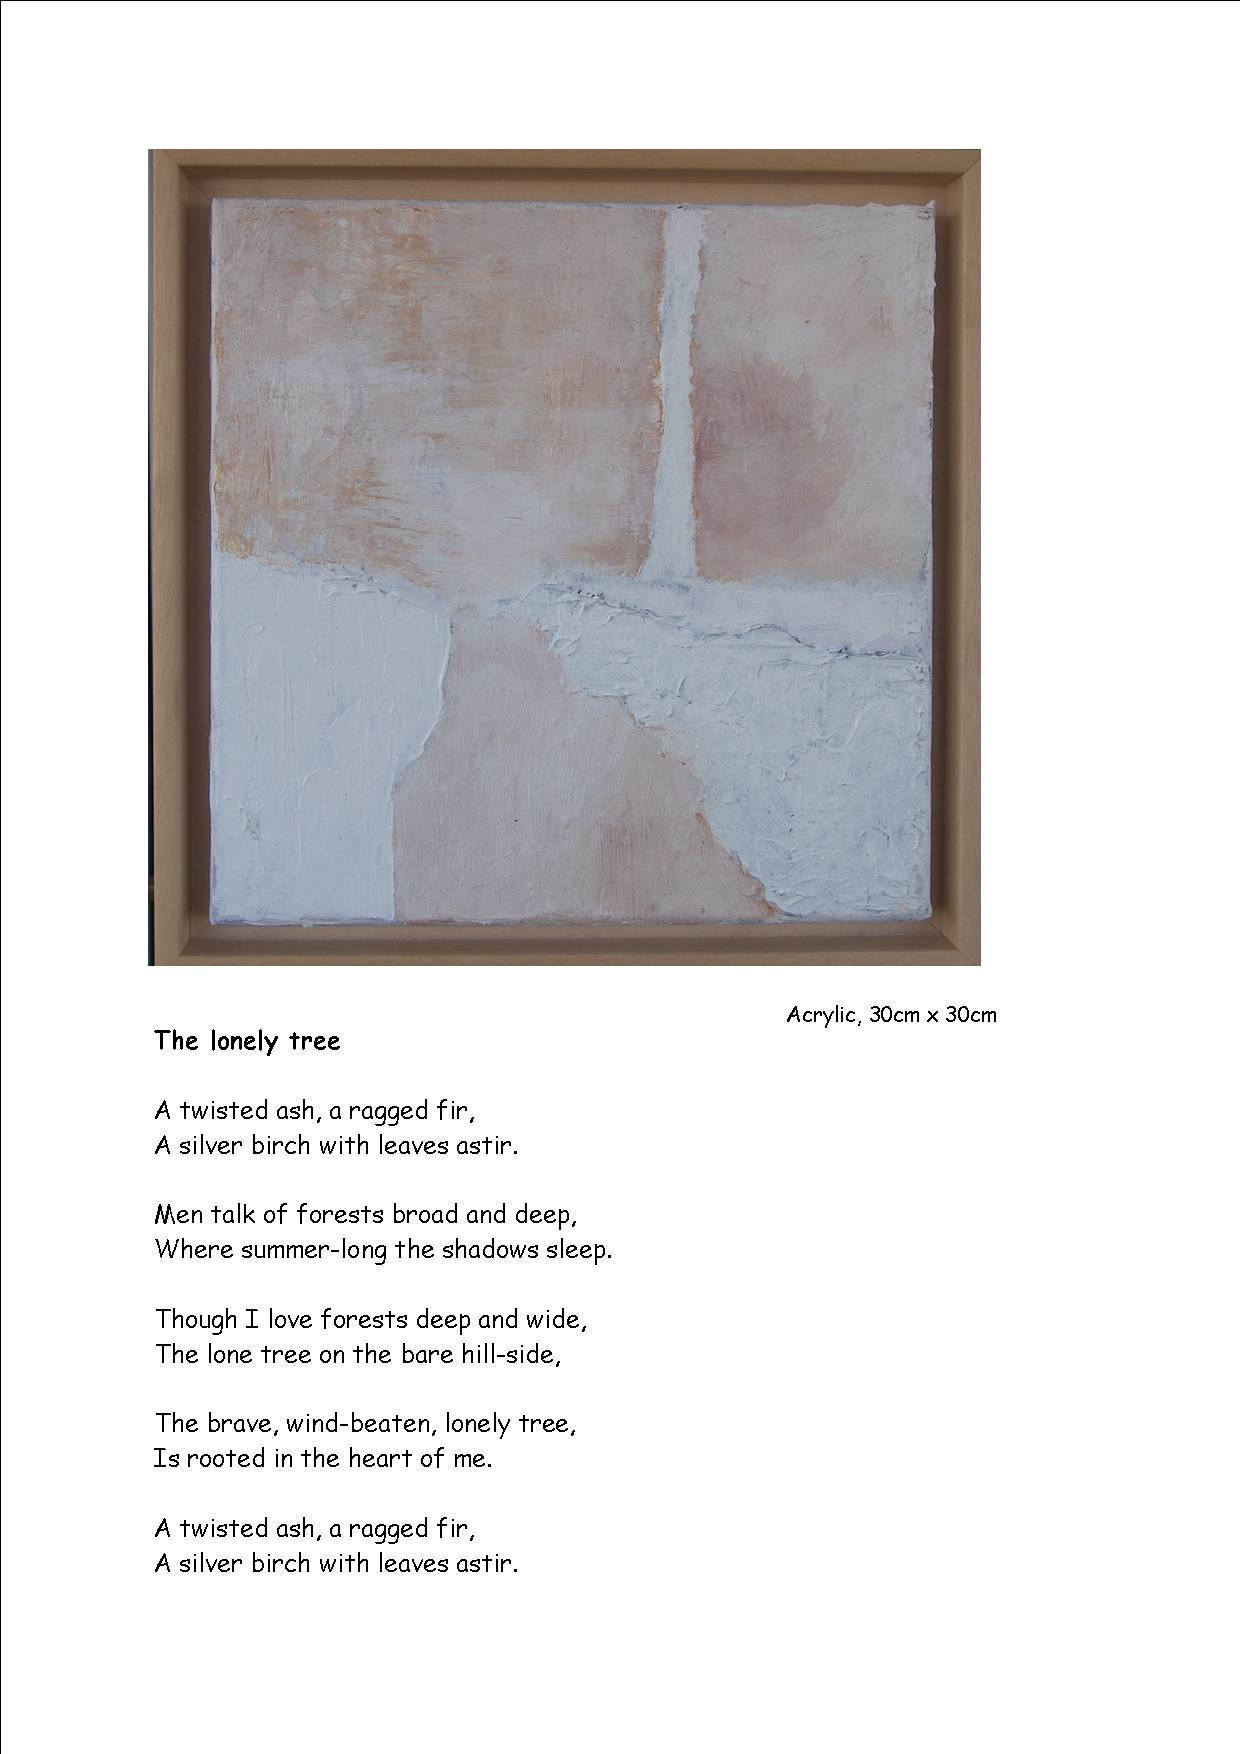 The Lonely Tree - poem and picture